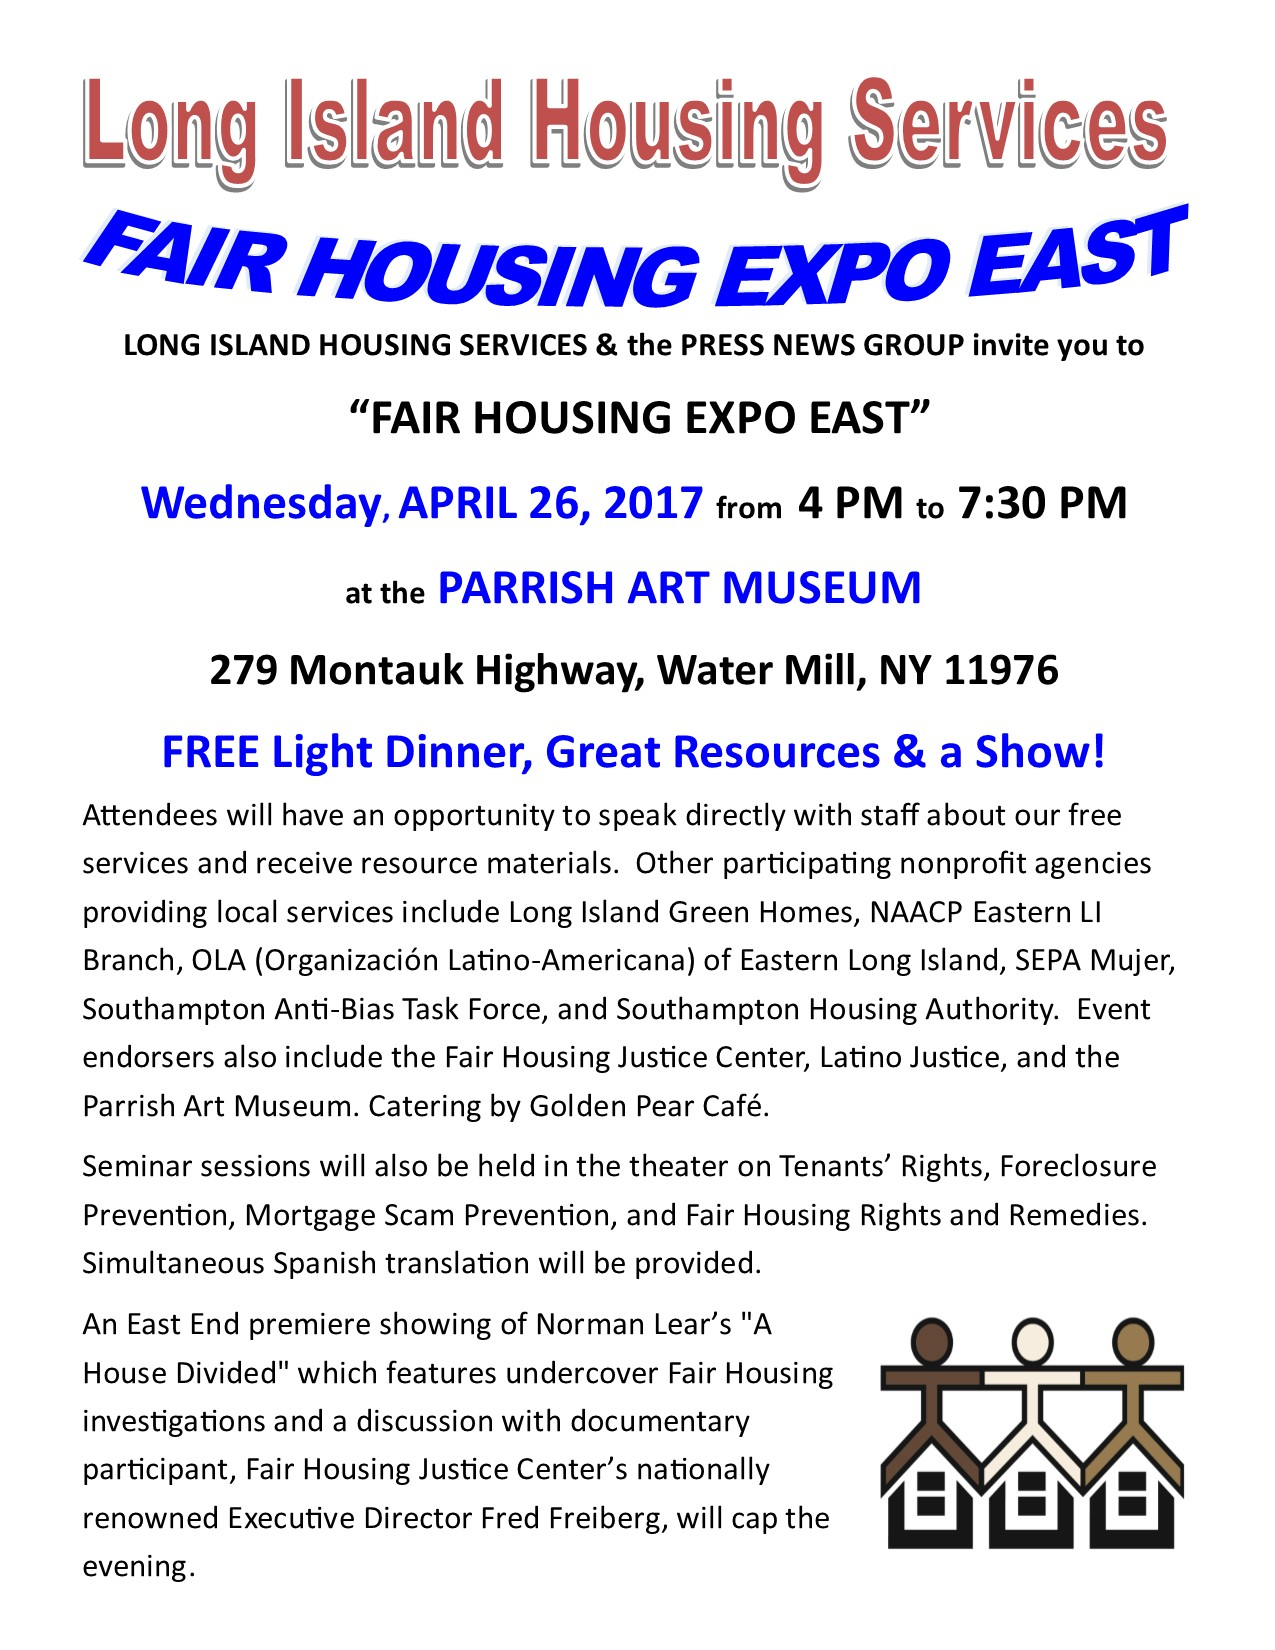 FAIR HOUSING EXPO EAST 4-26-17 flyer pdf